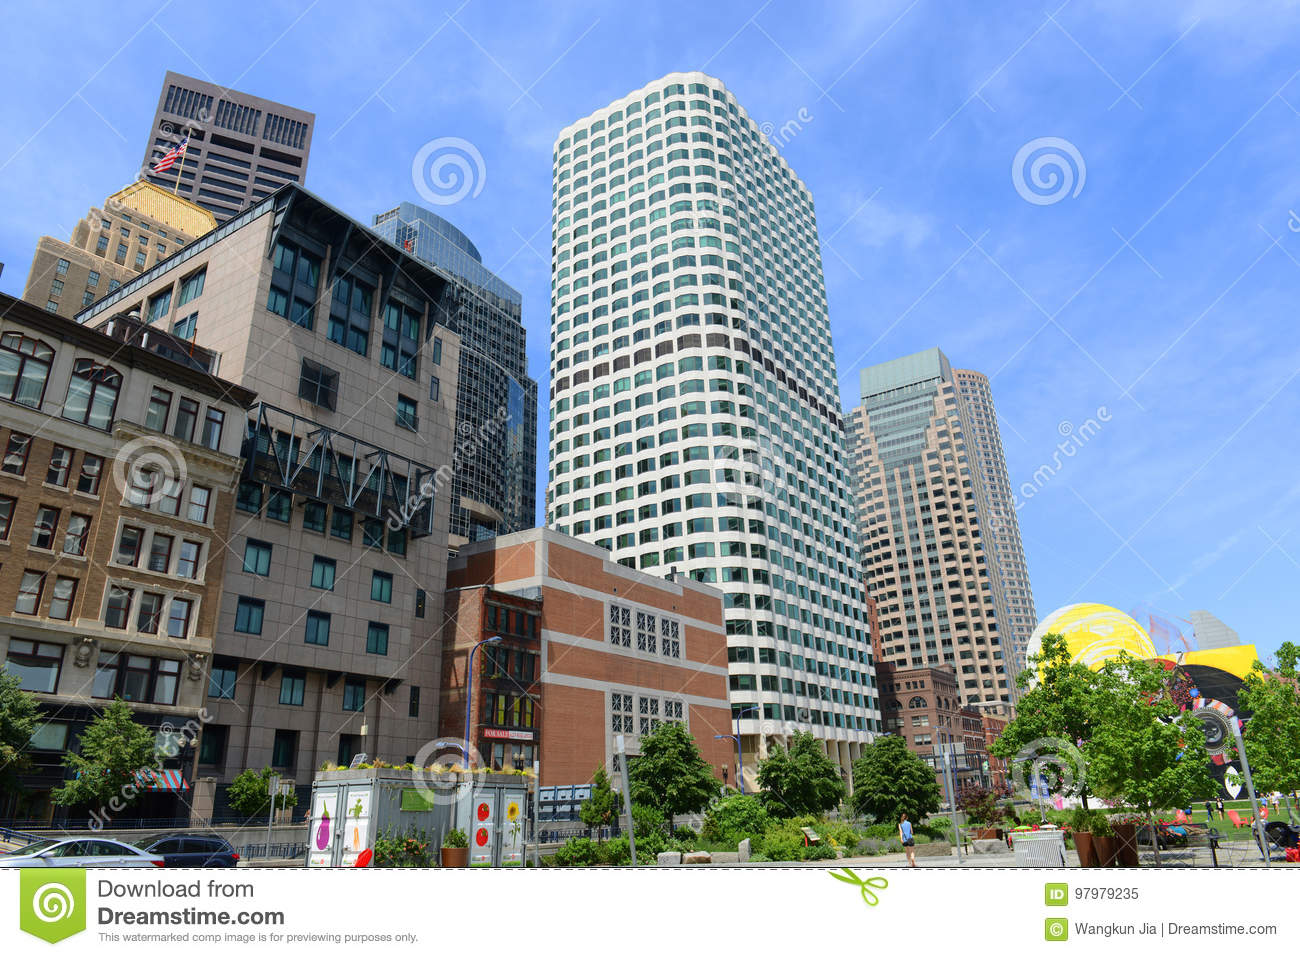 Boston Financial Center Including Keystone Building On 99 High Street In Downtown Massachusetts USA